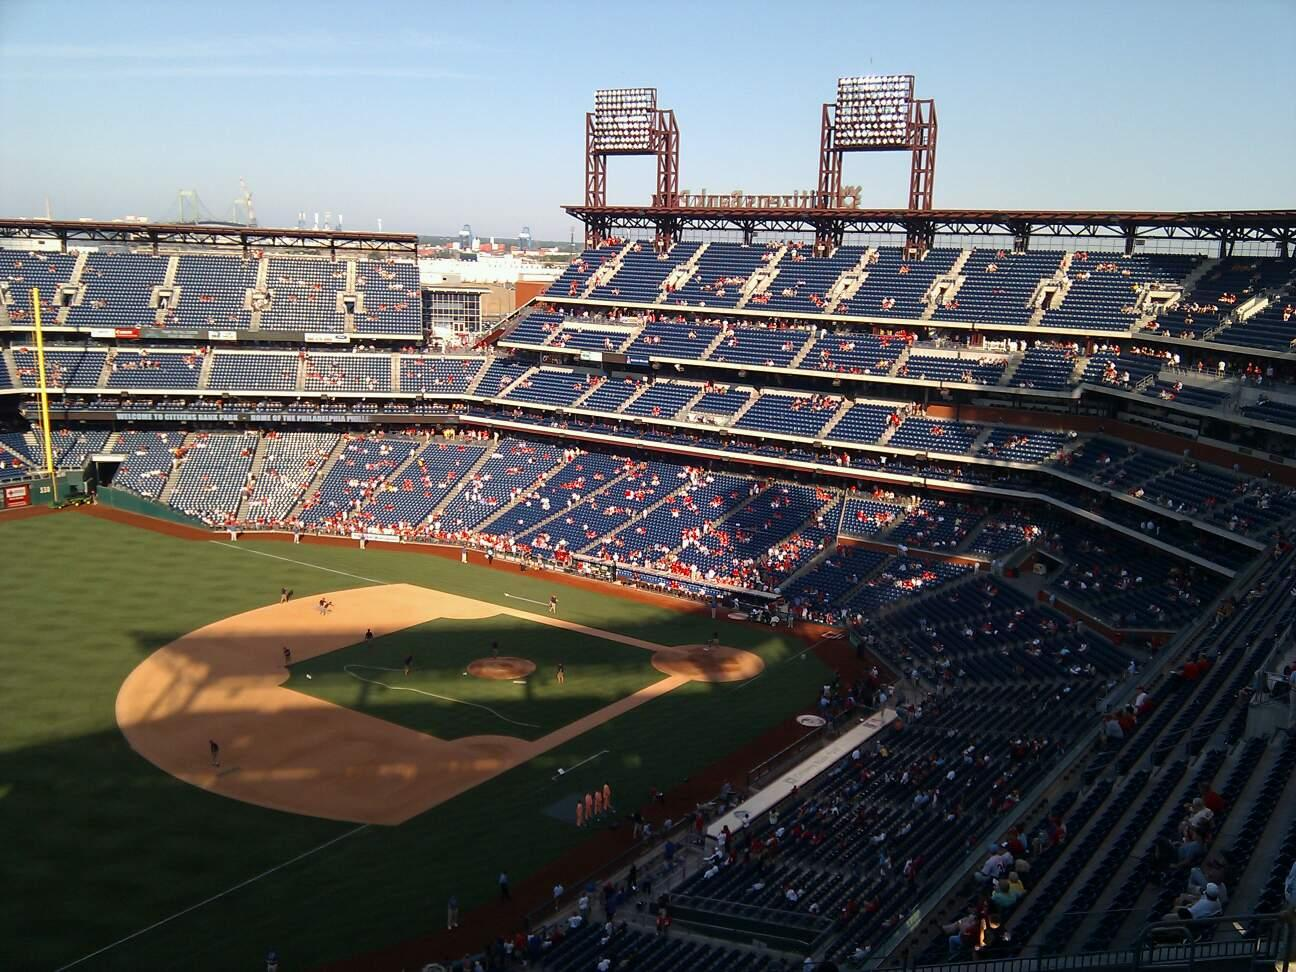 Citizens Bank Park Section 431 Row 15 Seat 14